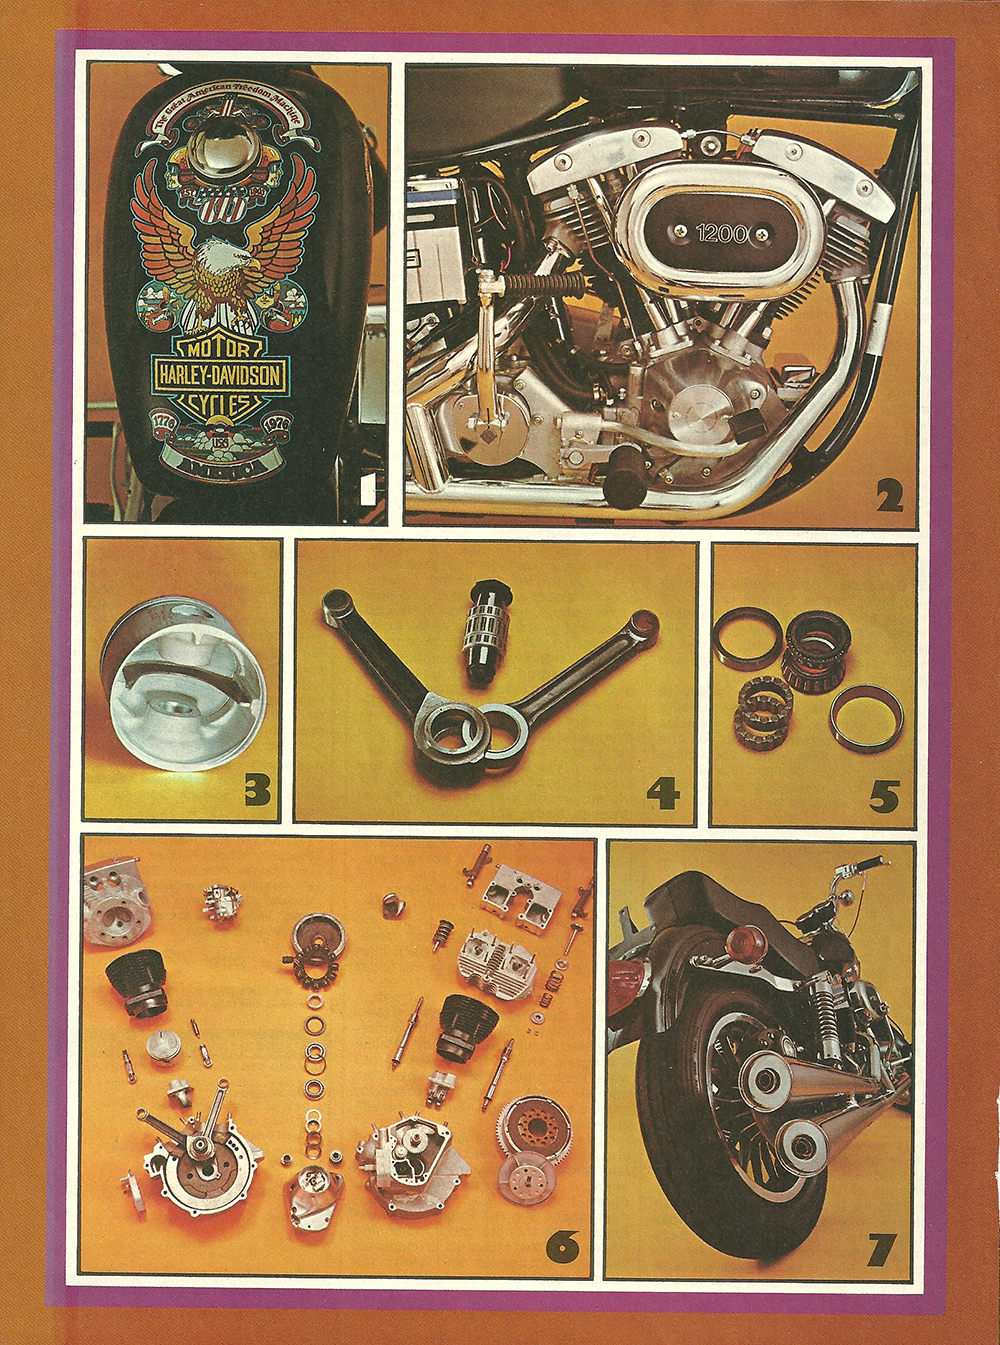 1976 Harley Super Glide Liberty Edition article 1.jpg